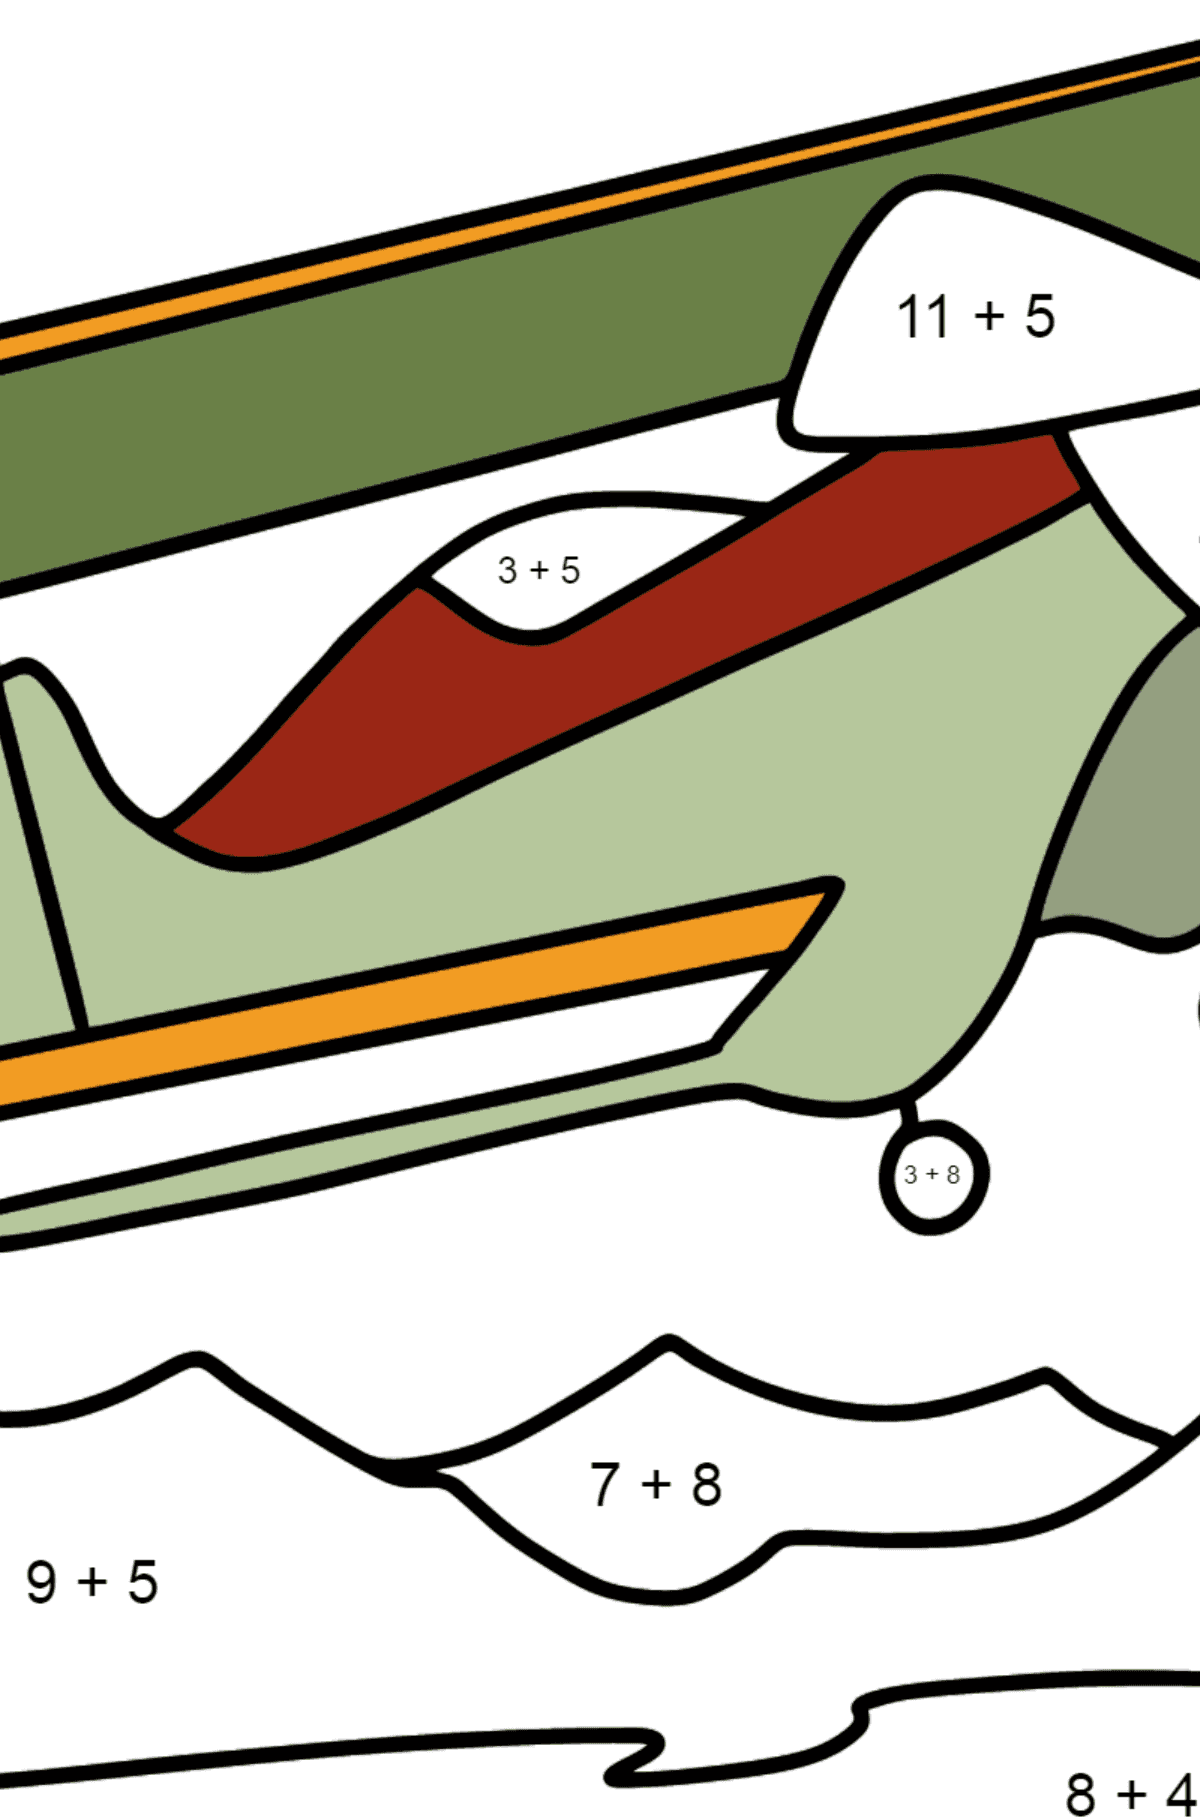 Coloring page - Light Airplane flies Over Mountains - Math Coloring - Addition for Kids